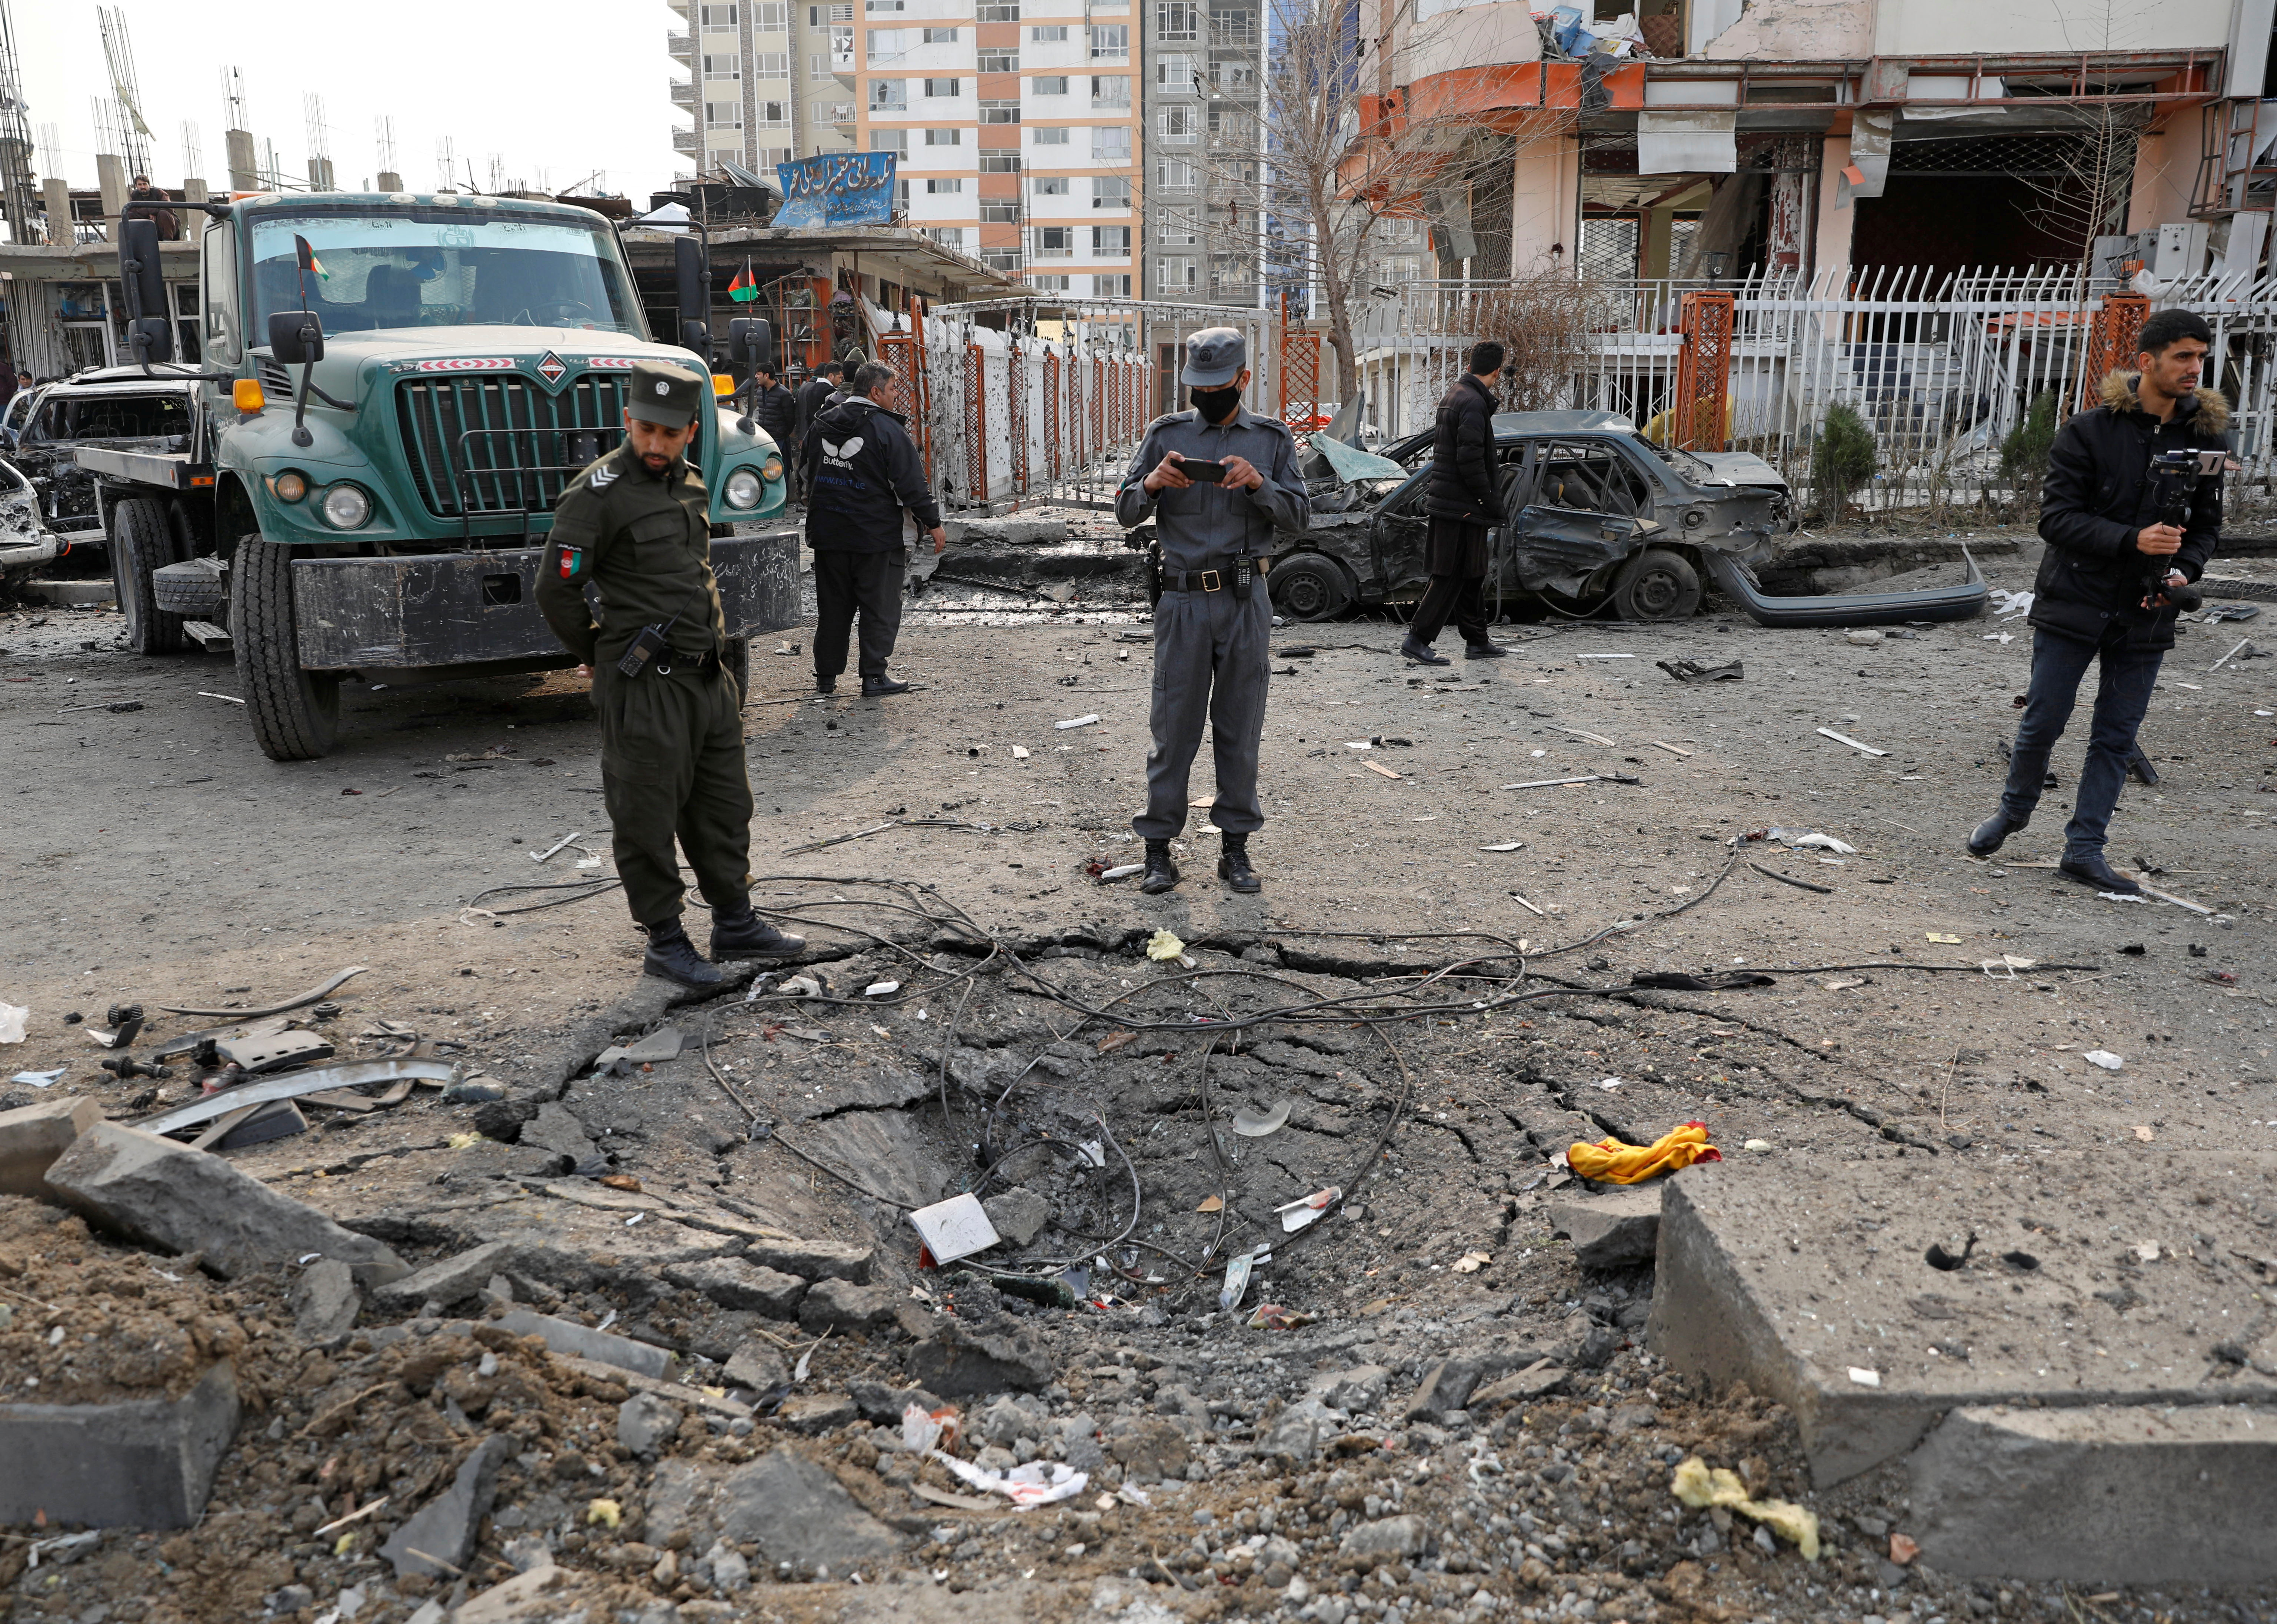 Vehicle bomb attack kills many in Afghan capital